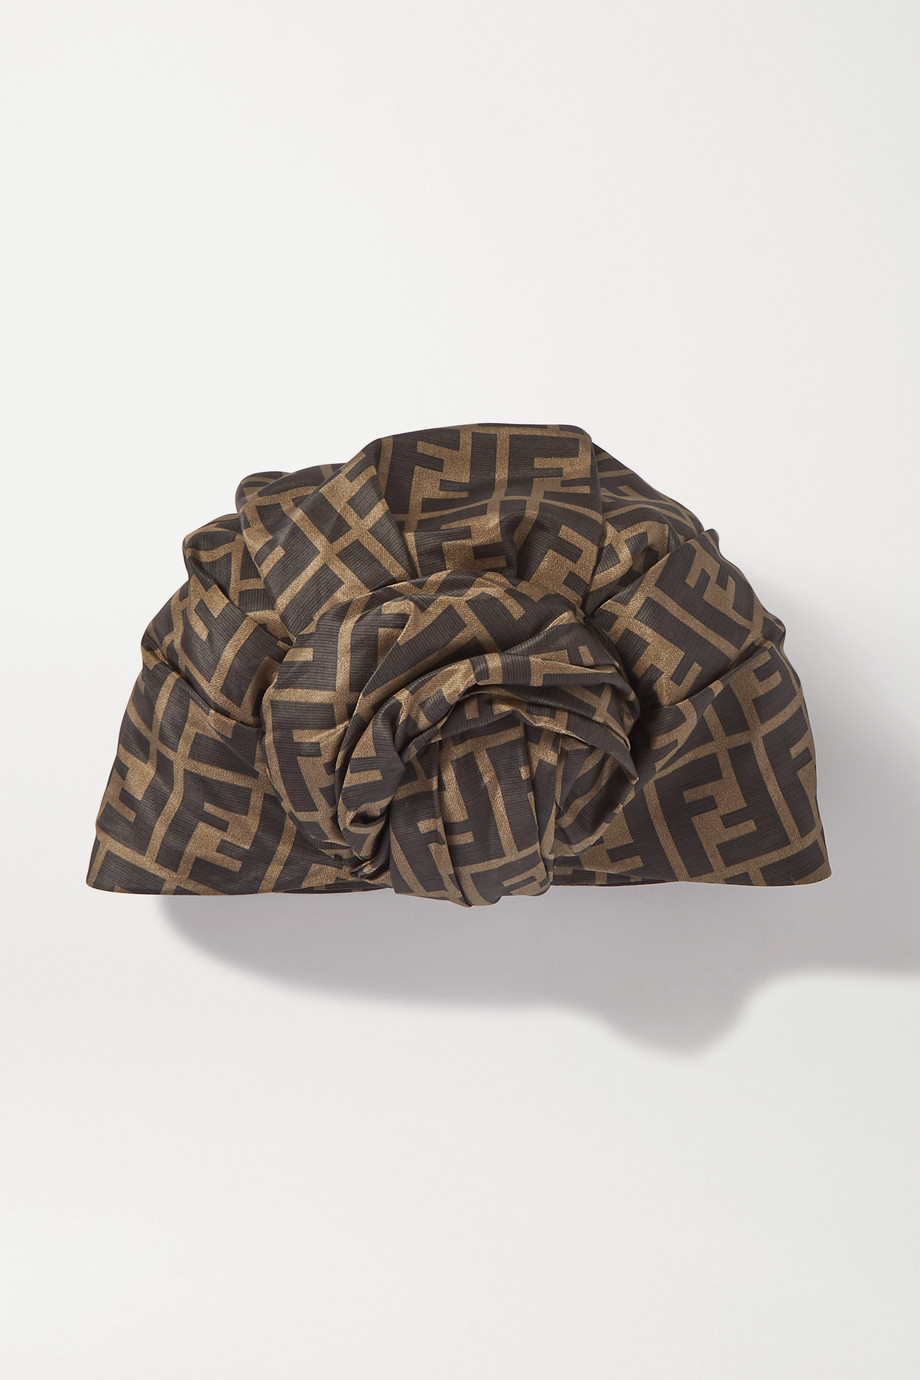 Fendi Printed silk turban